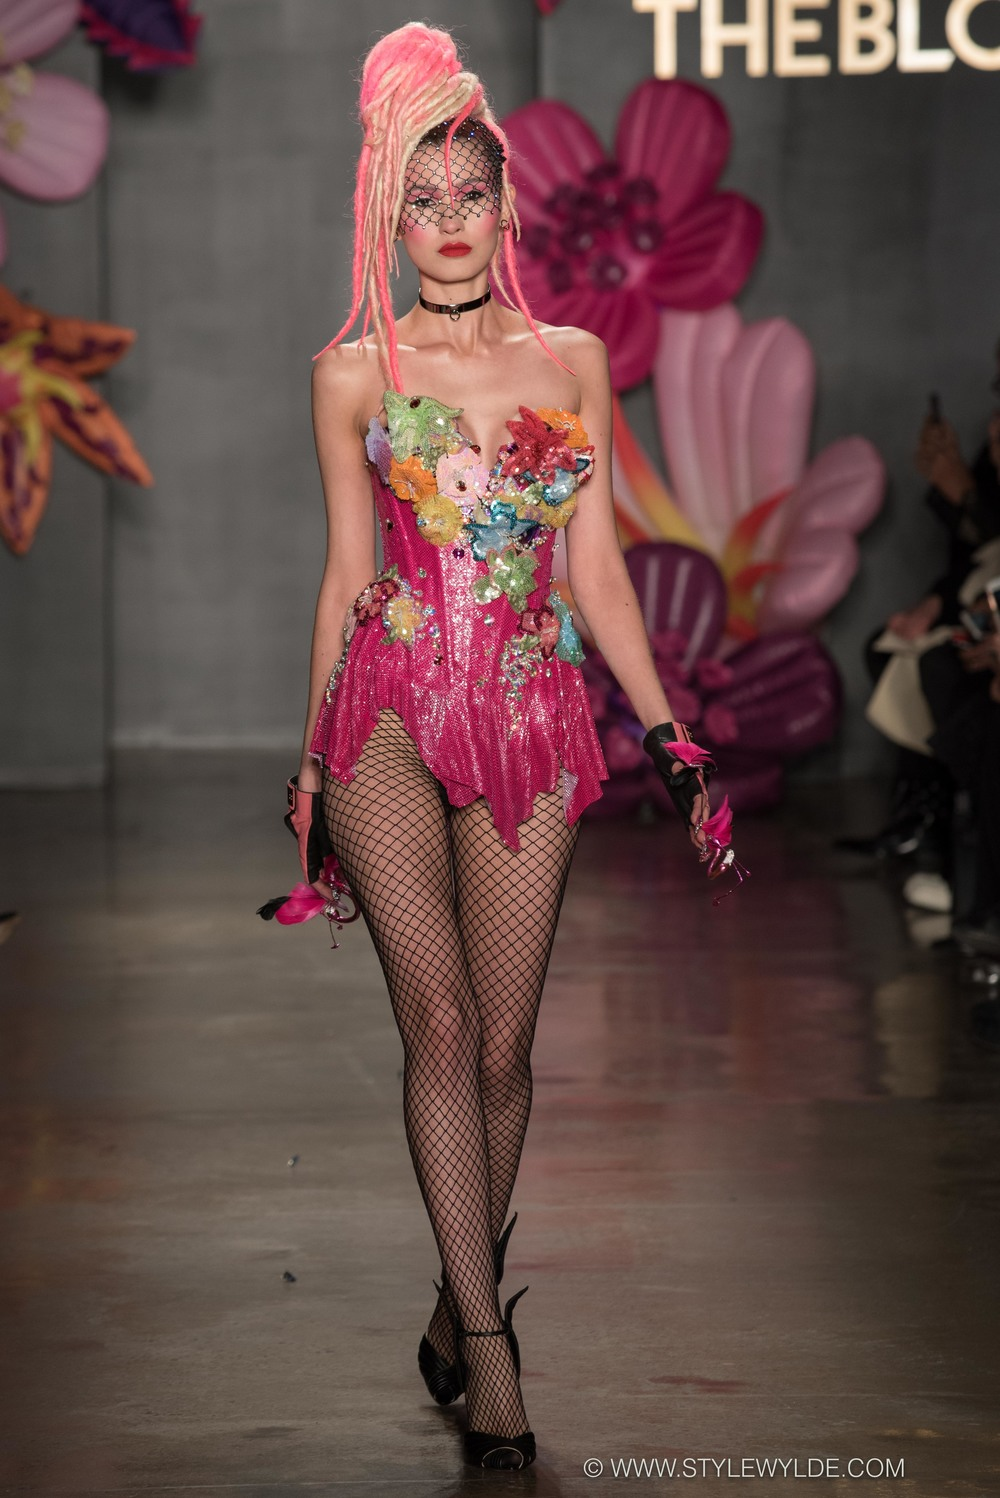 StyleWylde - The blonds- AW16-28.jpg